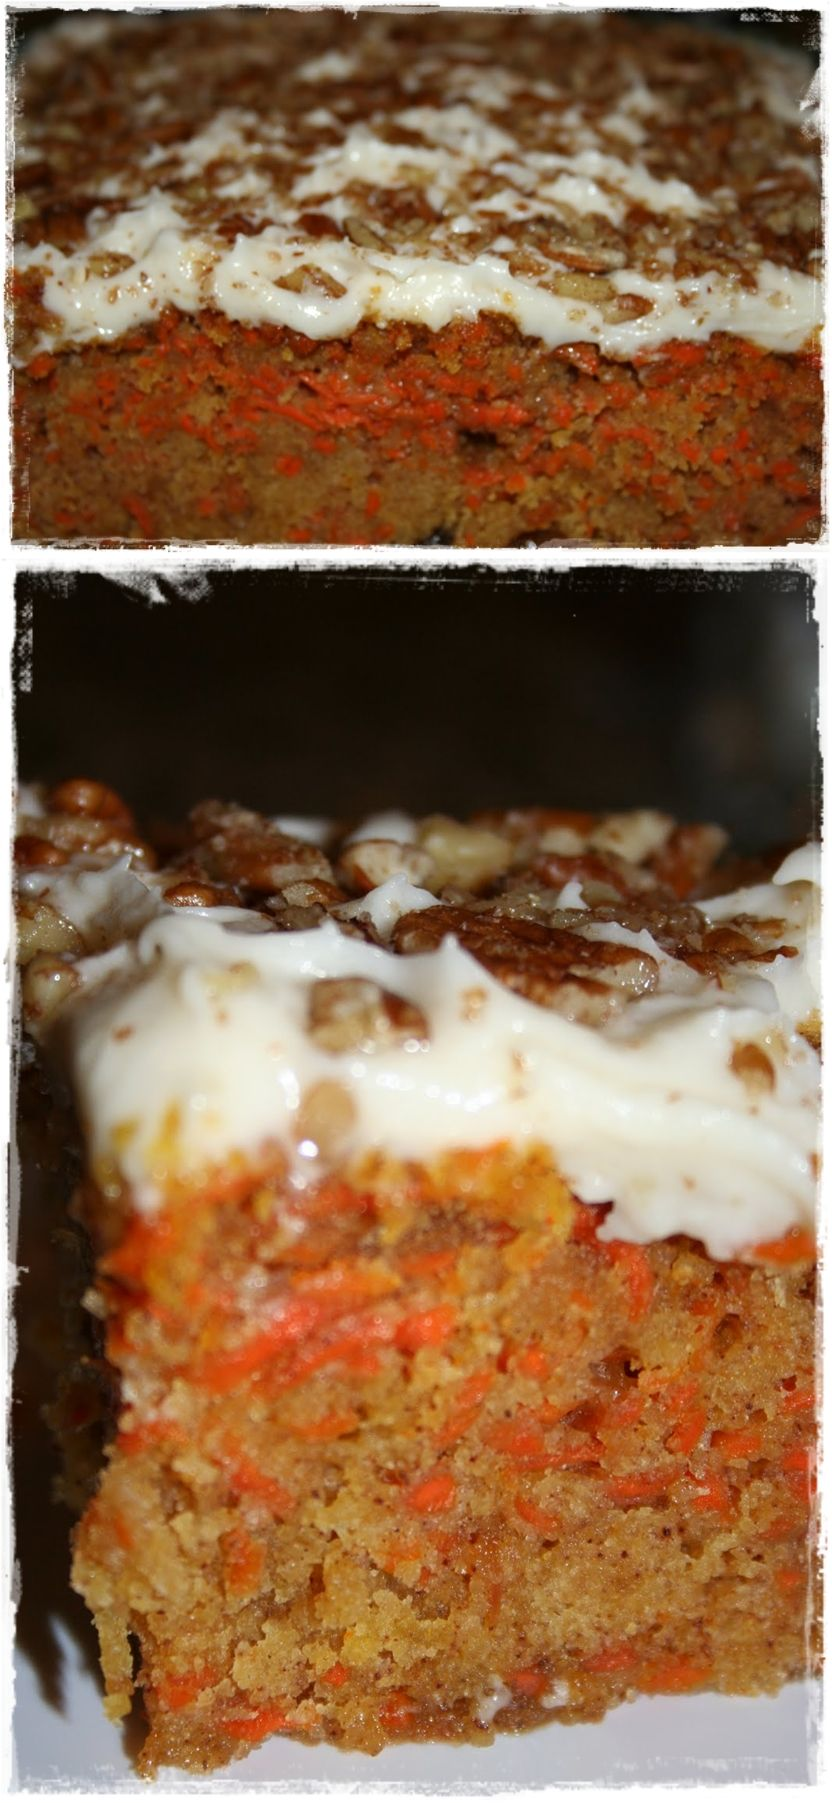 Search by tag: carrotcake(dish)